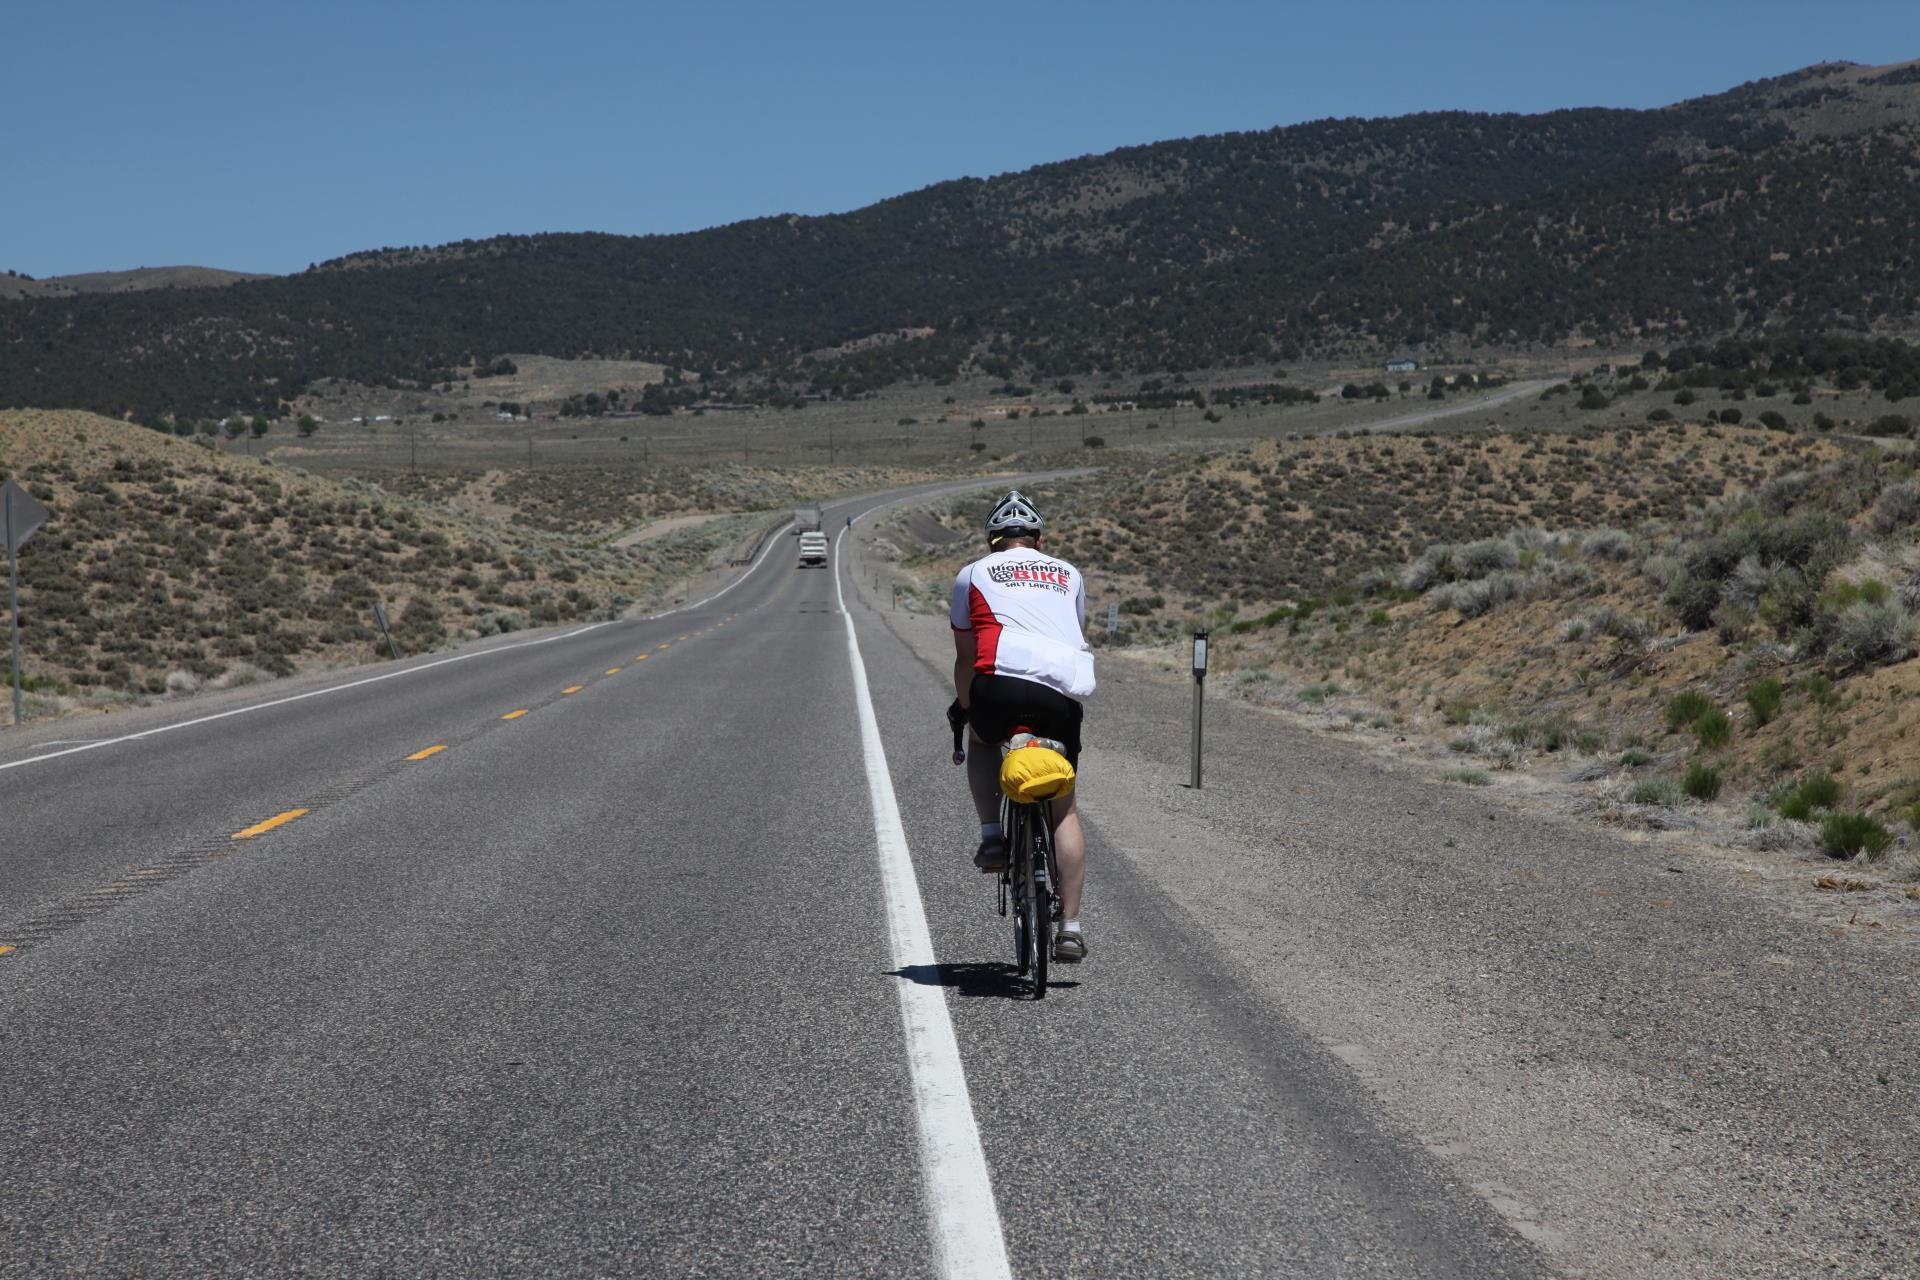 Bicyclist riding on U.S. 50 in Nevada